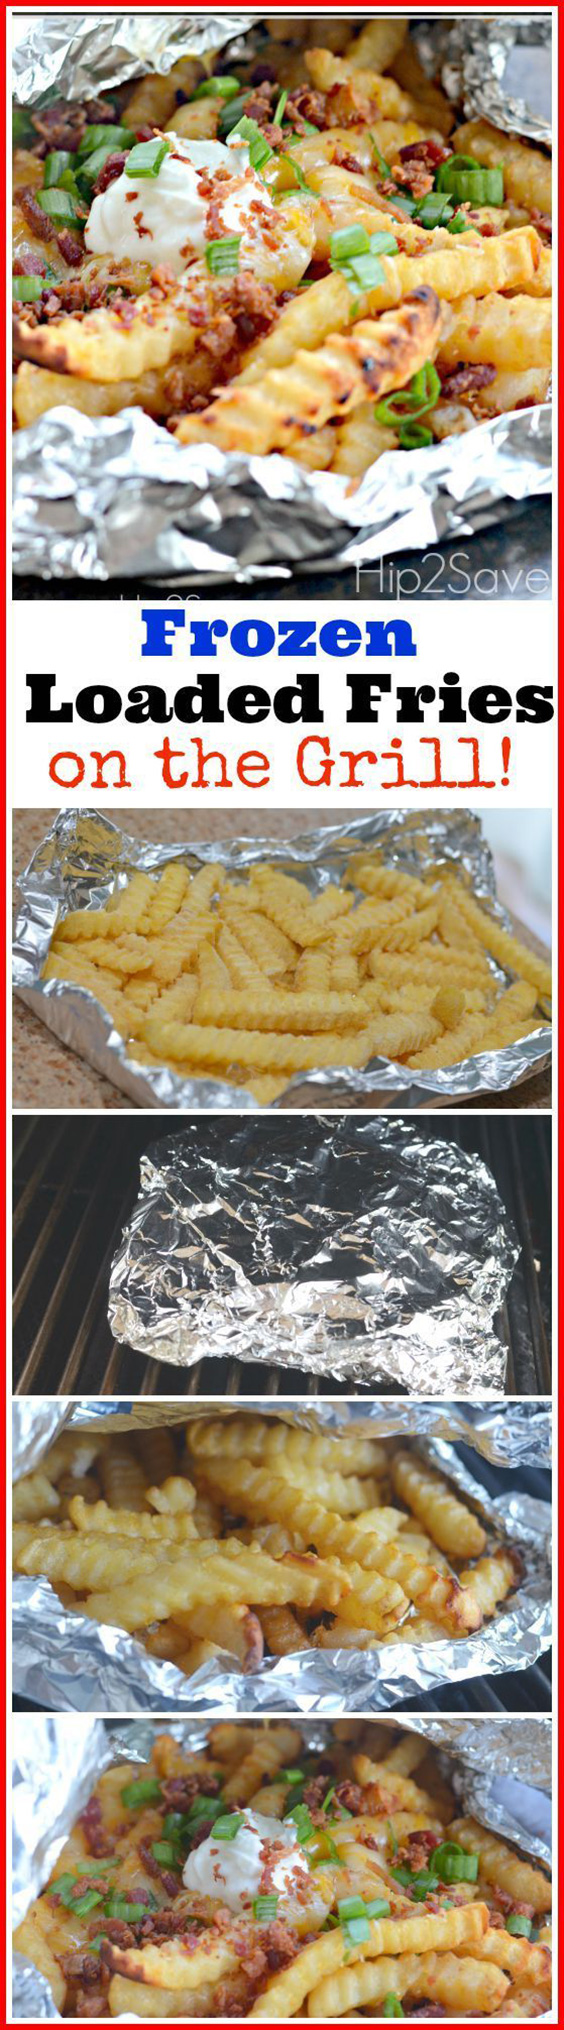 Hip2Save Frozen Loaded Fries on the grill